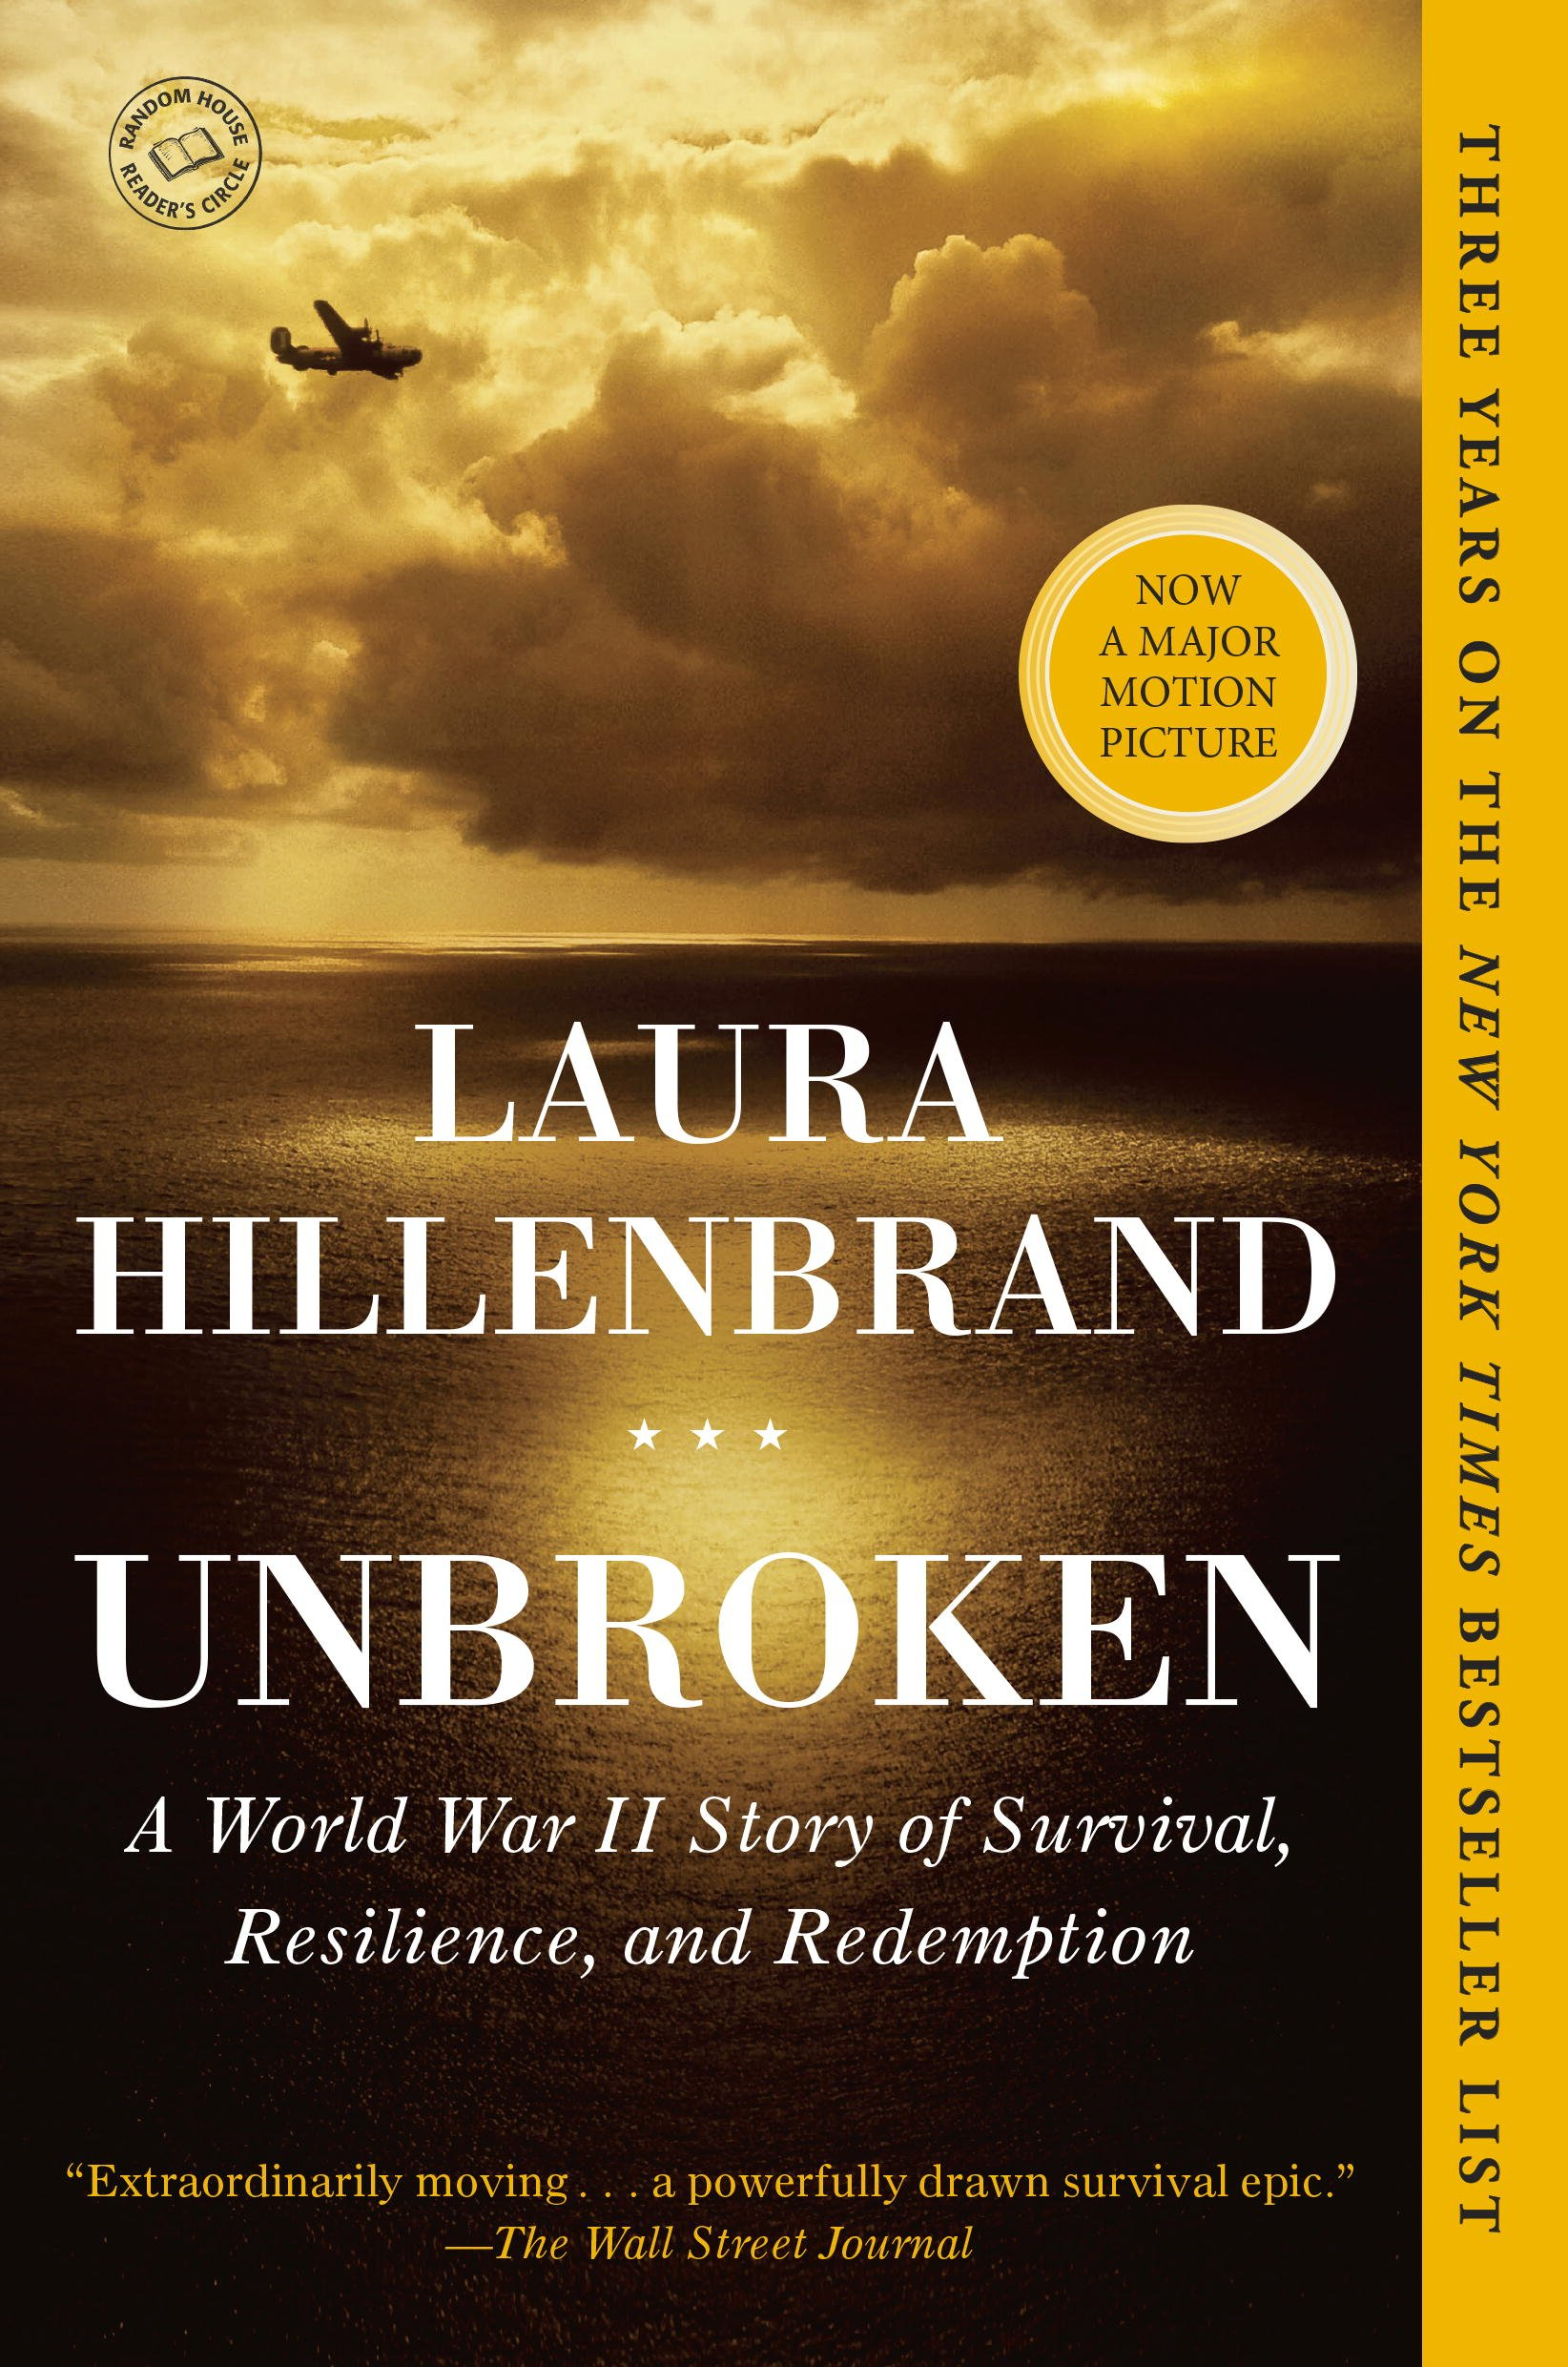 Unbroken: A World War II Story of Survival, Resilience, and Redemption, by Laura Hillenbrand